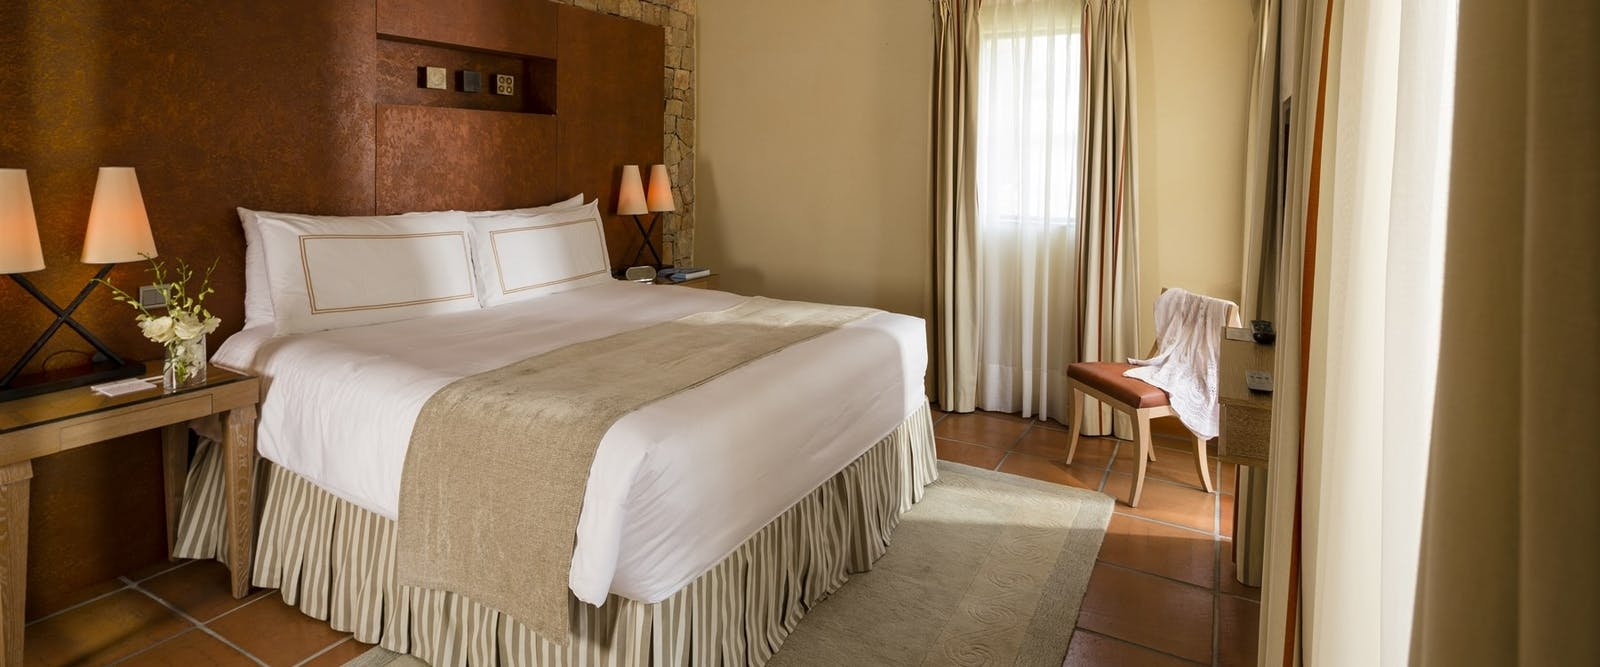 Premiere Suite at Terre Blanche Hotel Spa Golf Resort, Provence, France